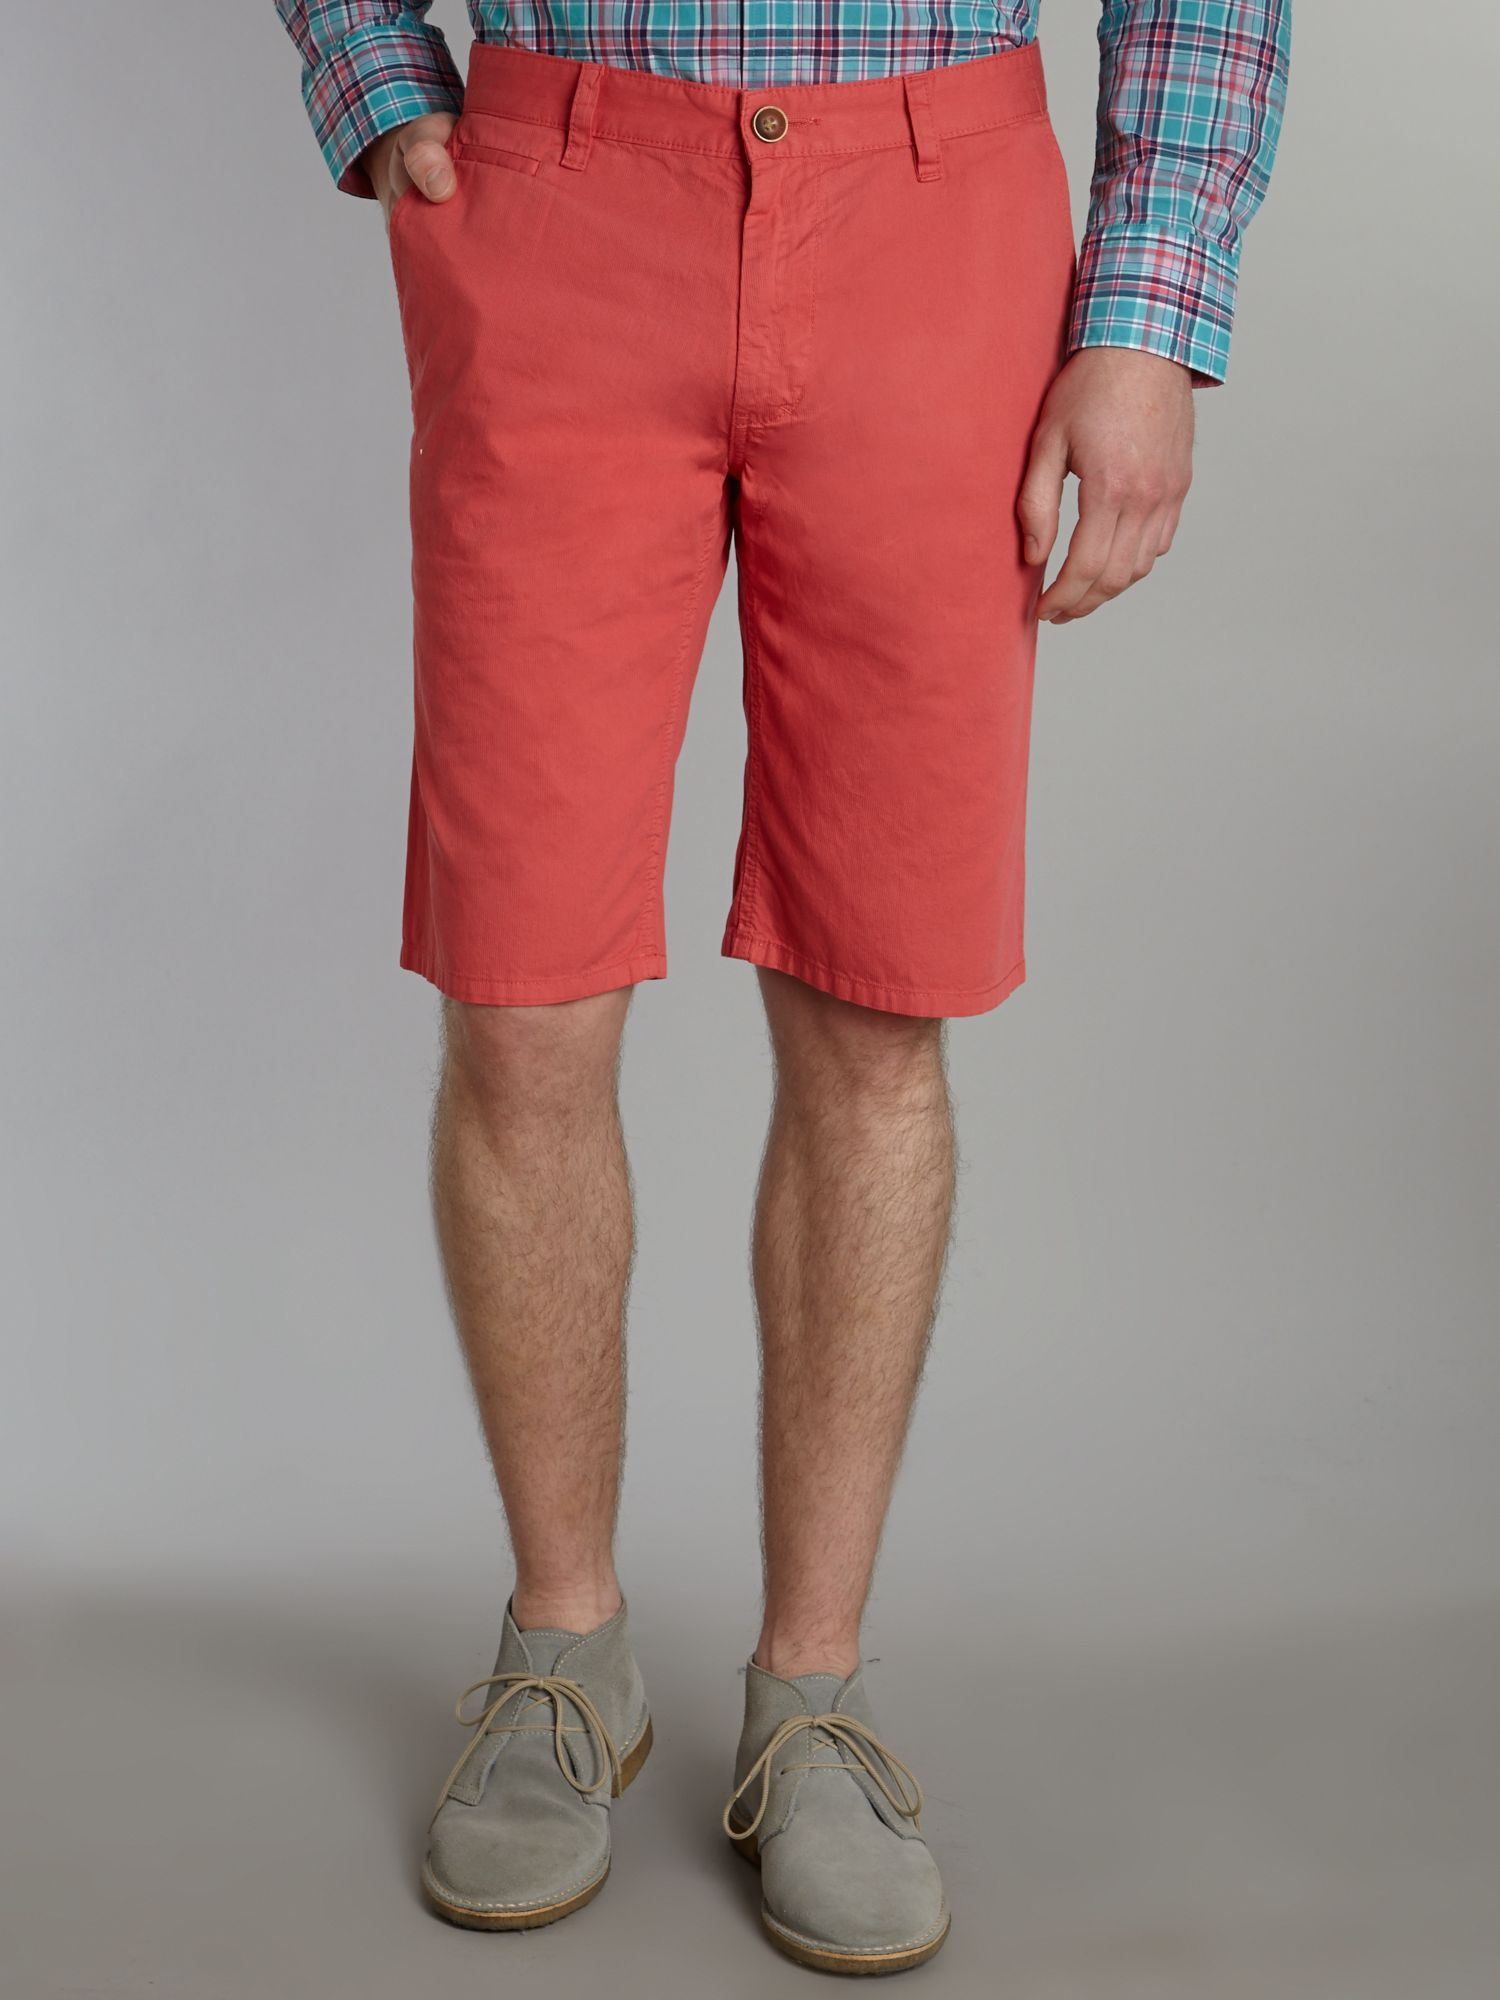 Tonal striped shorts